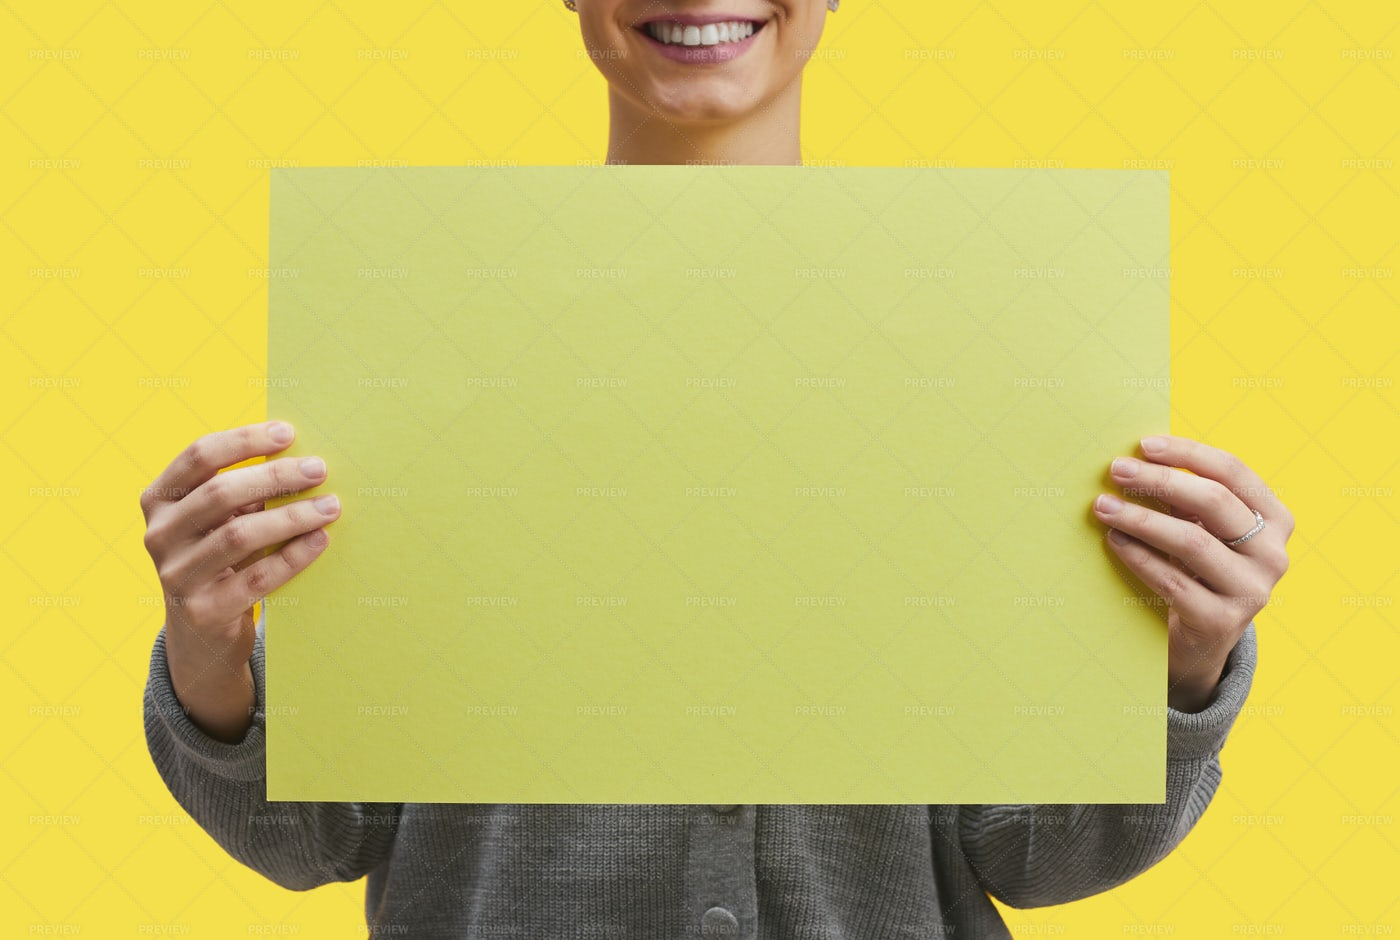 Smiling Woman Holding Sign On Yellow: Stock Photos